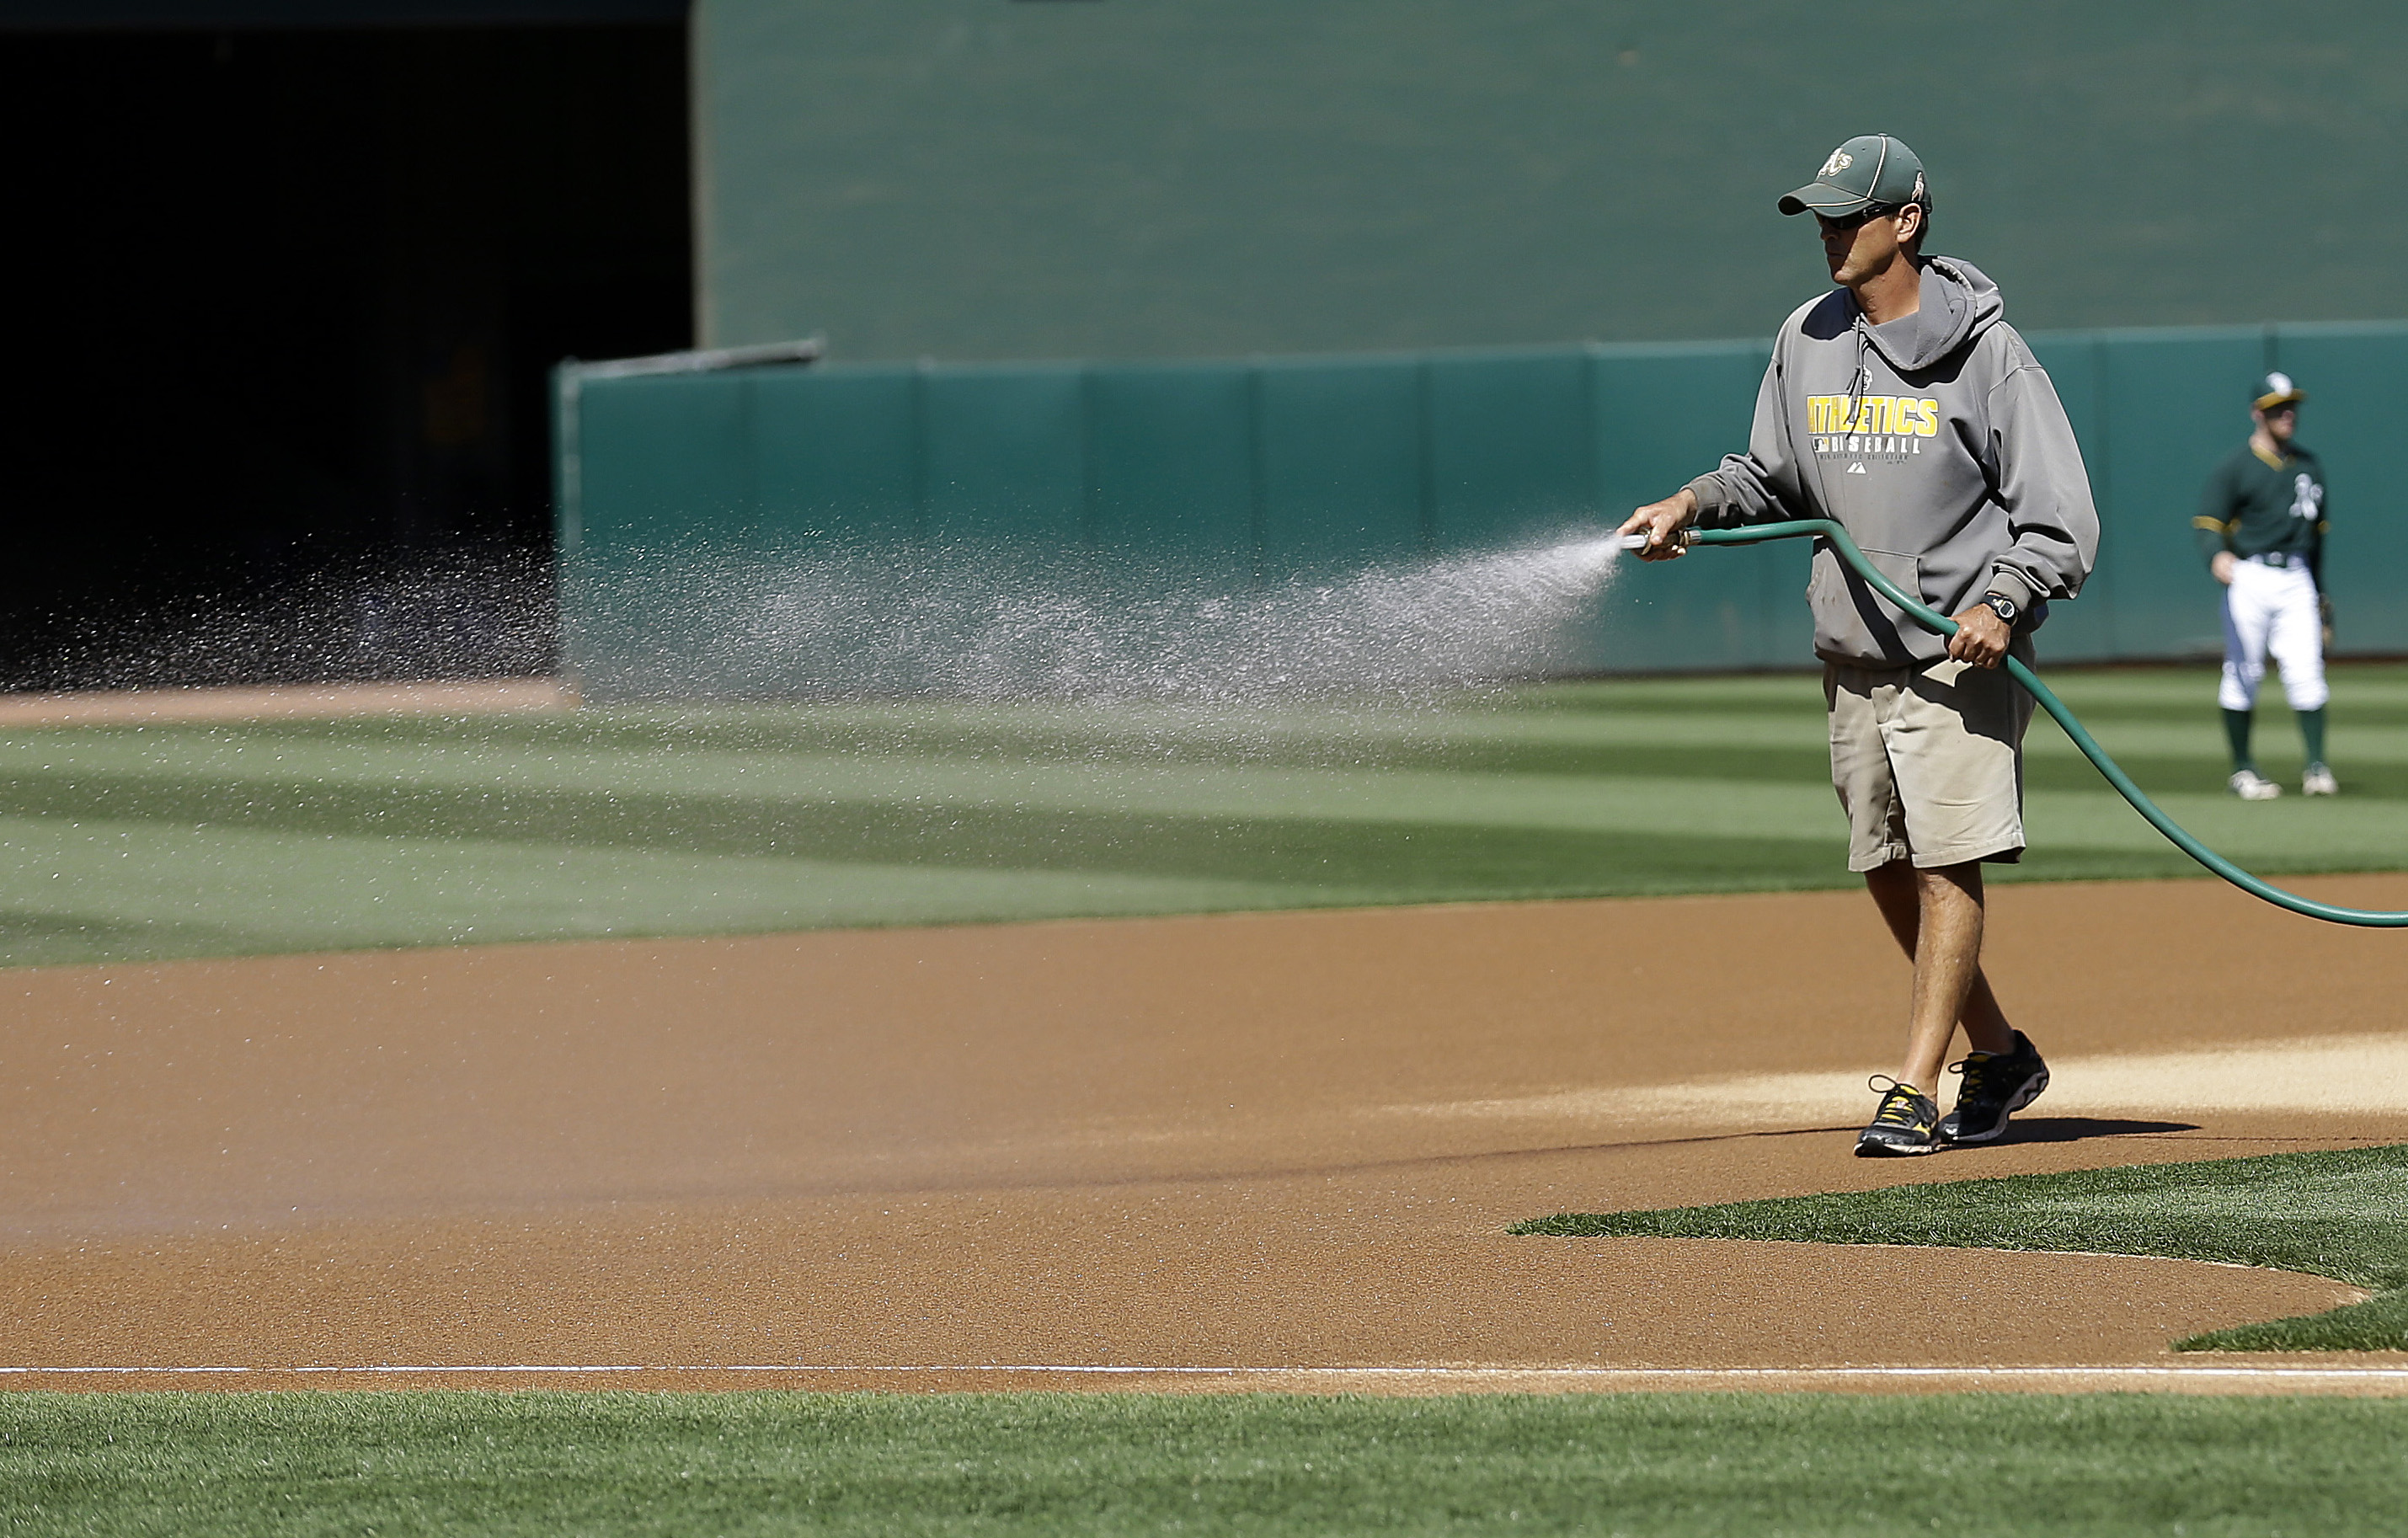 In this photo taken May 26, 2015, Oakland Athletics head groundskeeper Clay Wood waters down the infield at O.co Coliseum before a baseball game between the Athletics and the Detroit Tigers in Oakland, Calif. California's severe drought is affecting how b